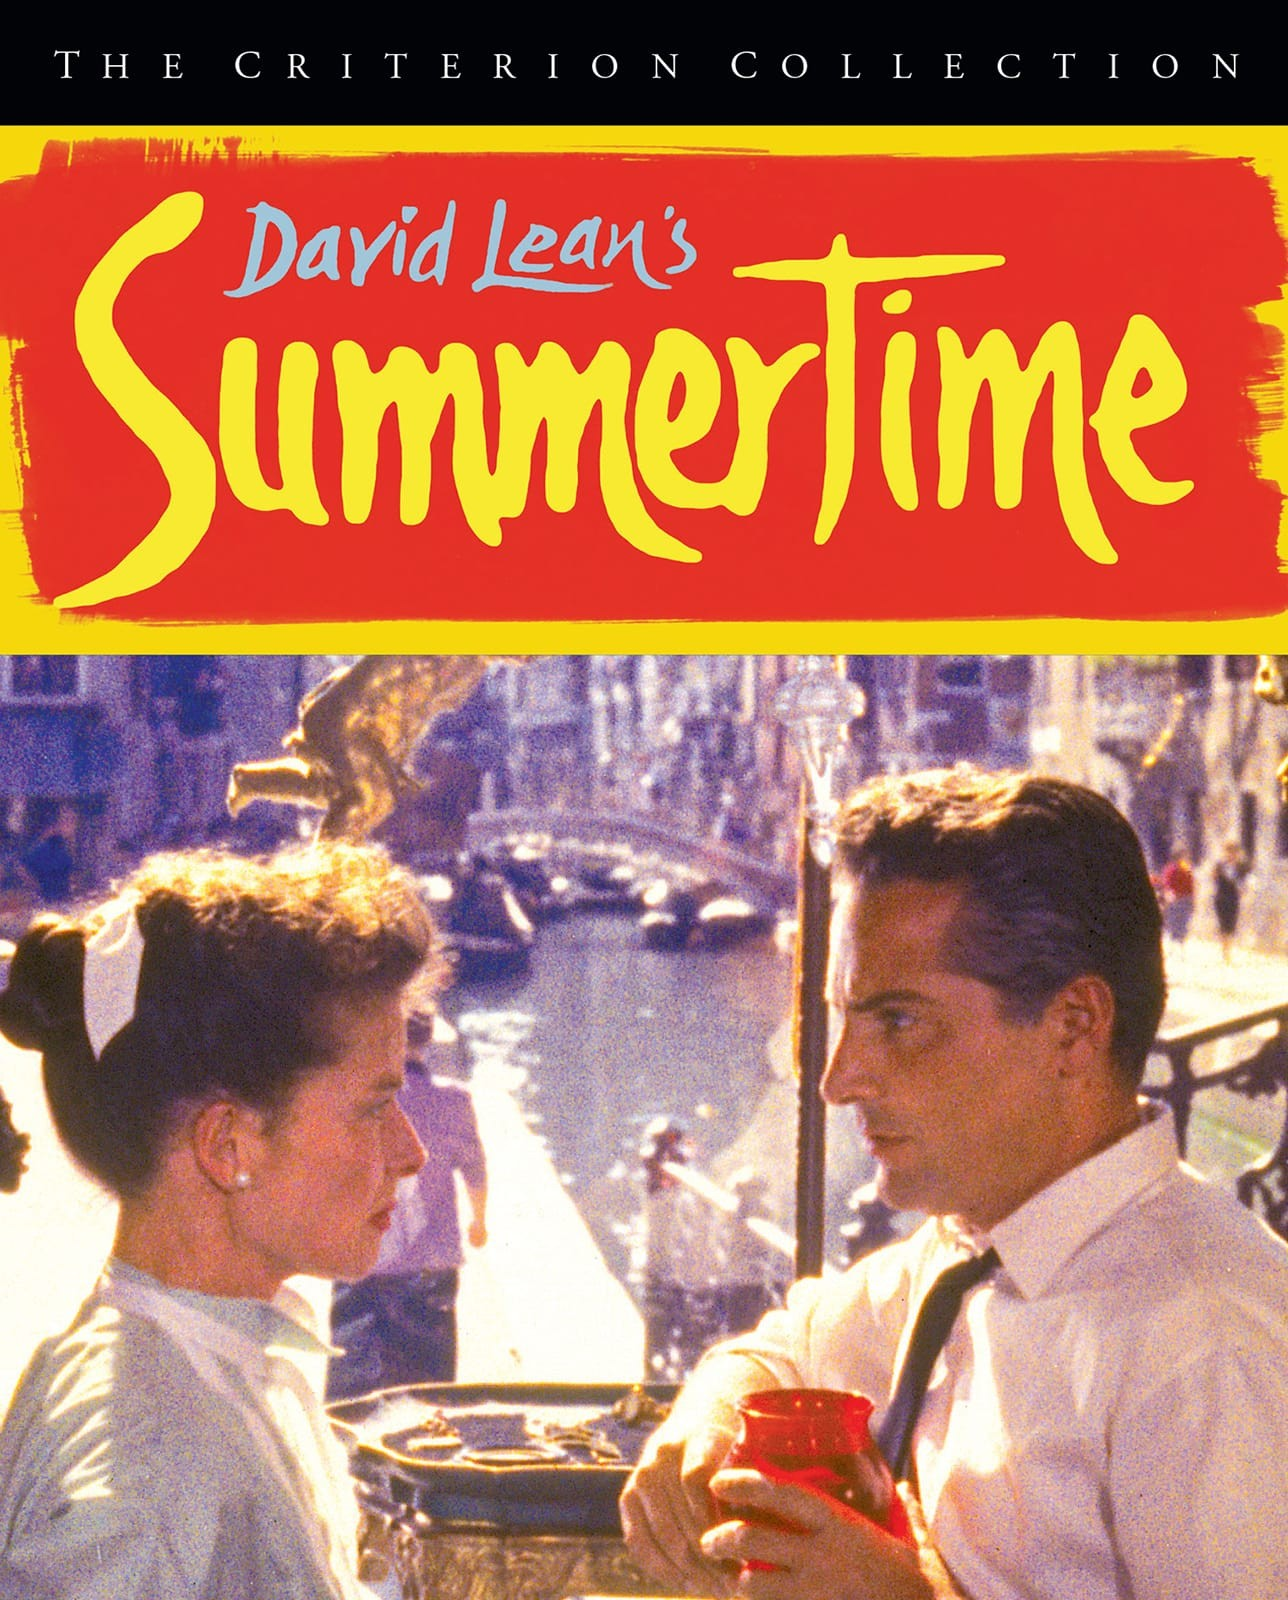 Image result for summertime criterion